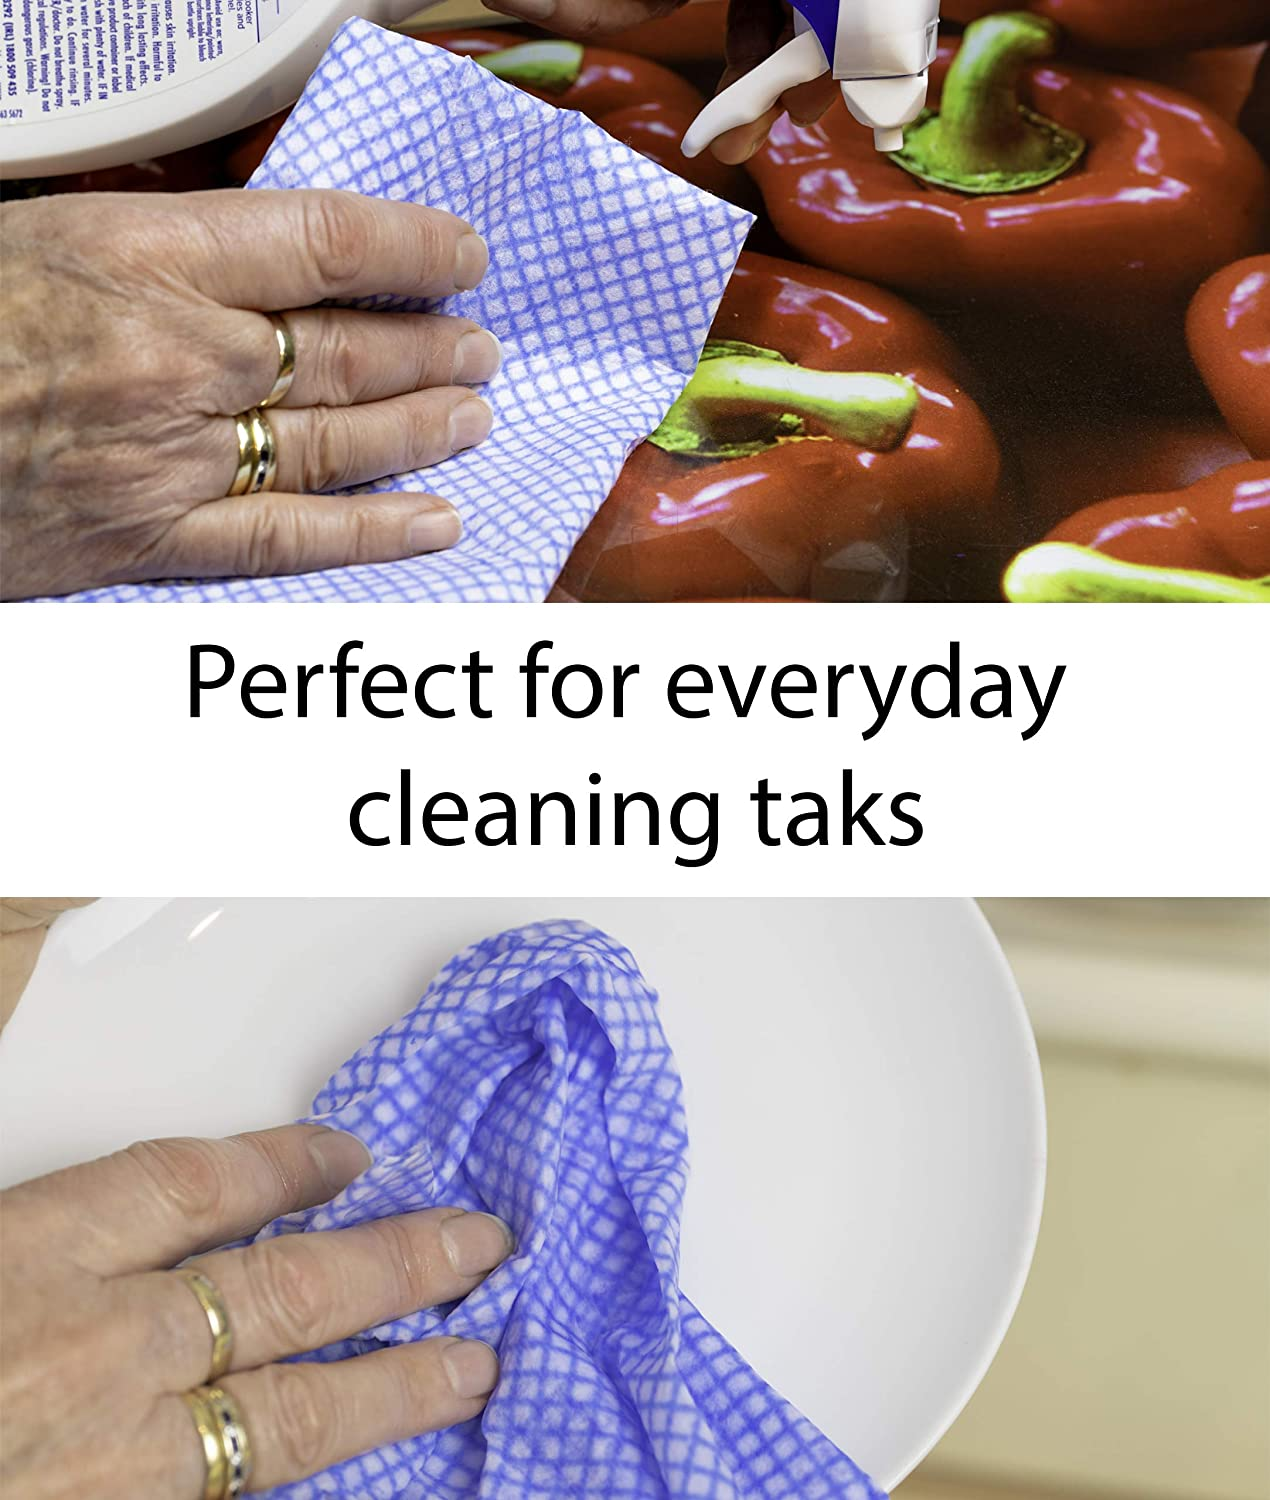 4 Packs per Box. | 50cm x 35cm 200 Large Multi Purpose Standard Weight Blue Disposable Cleaning Cloths 50 Cloths per Pack J ClothsStyle